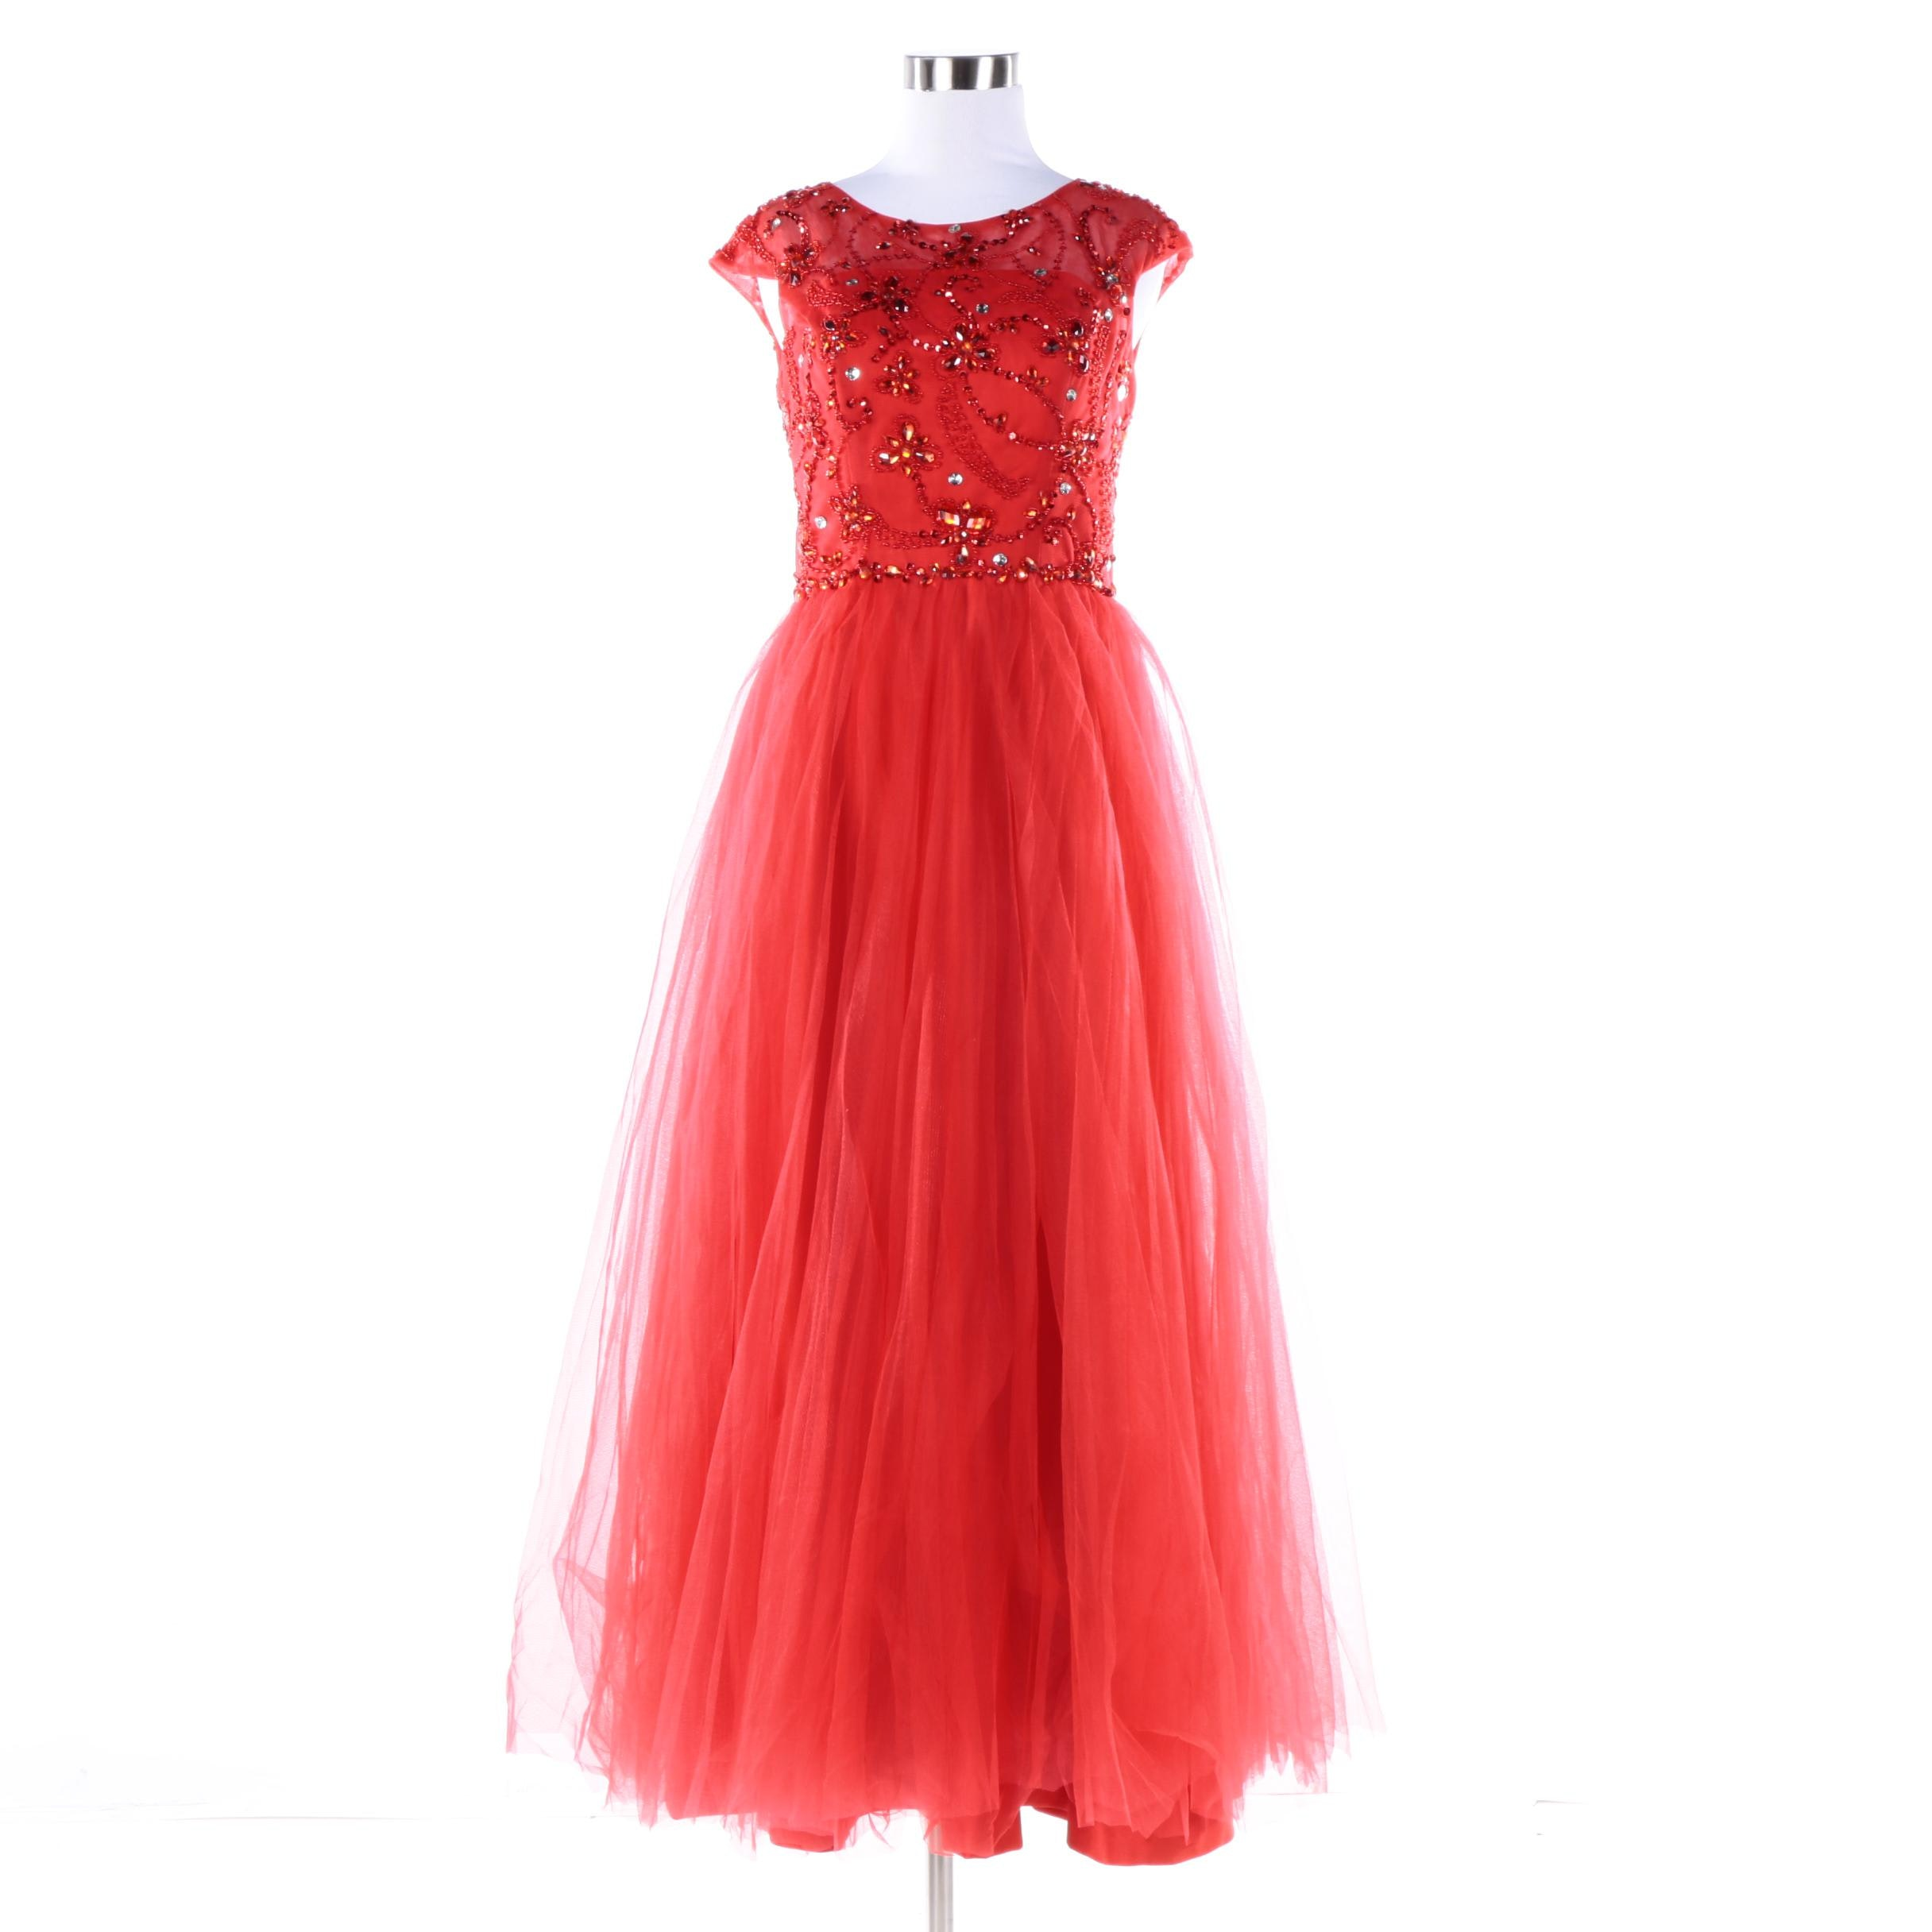 Embellished Red Gown with Full Tulle Skirt